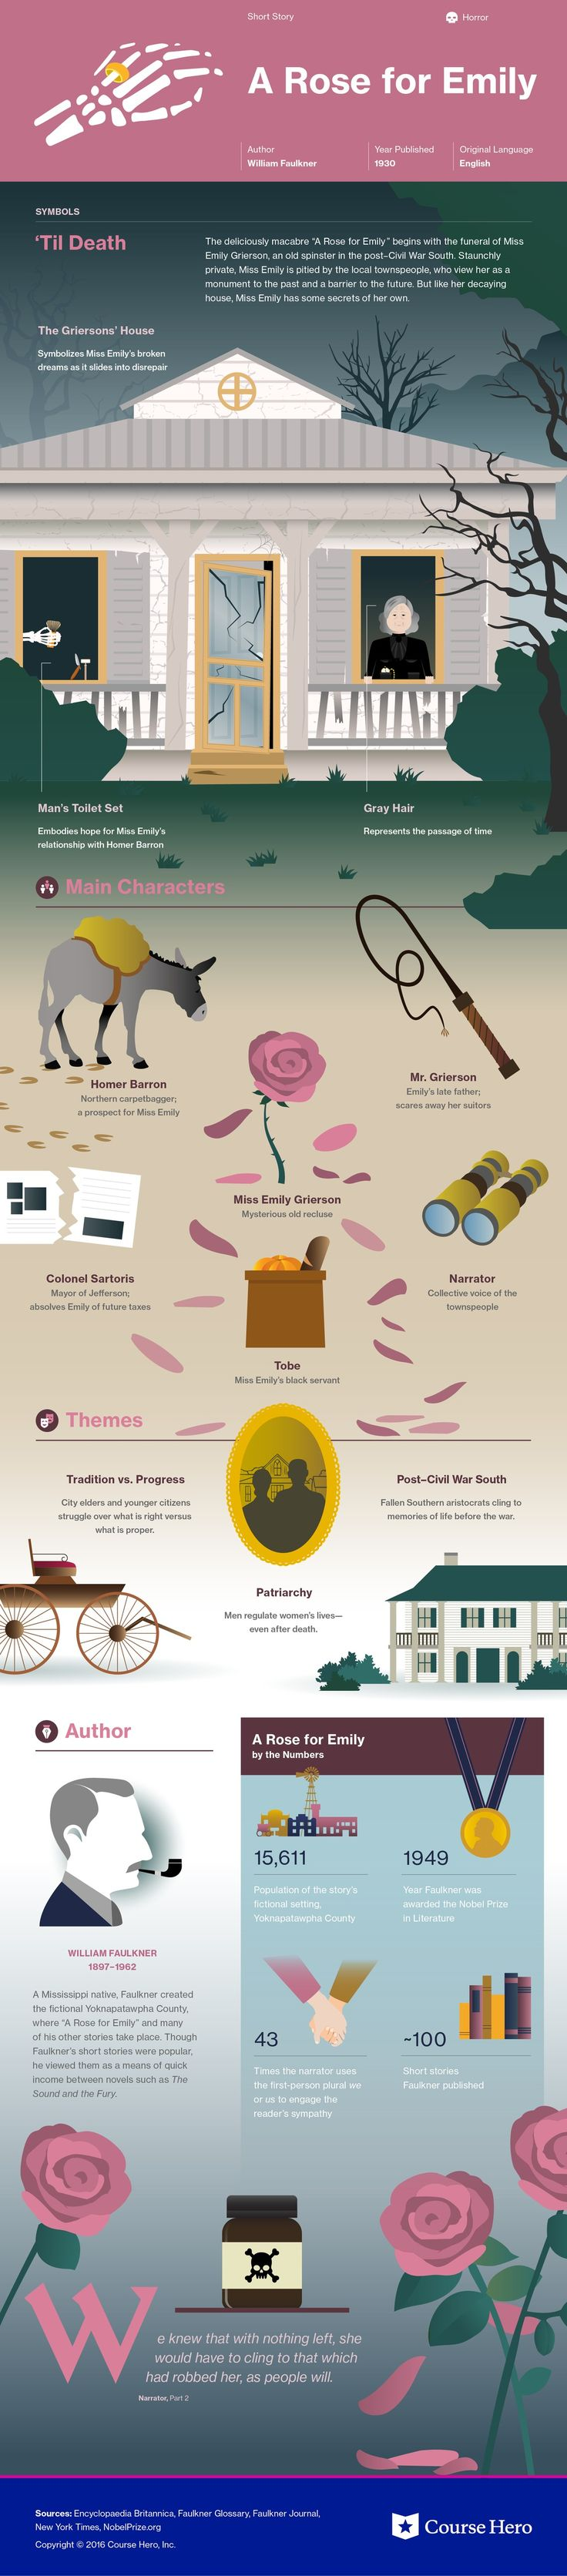 best a rose for emily ideas hand by hand gold a rose for emily infographic course hero